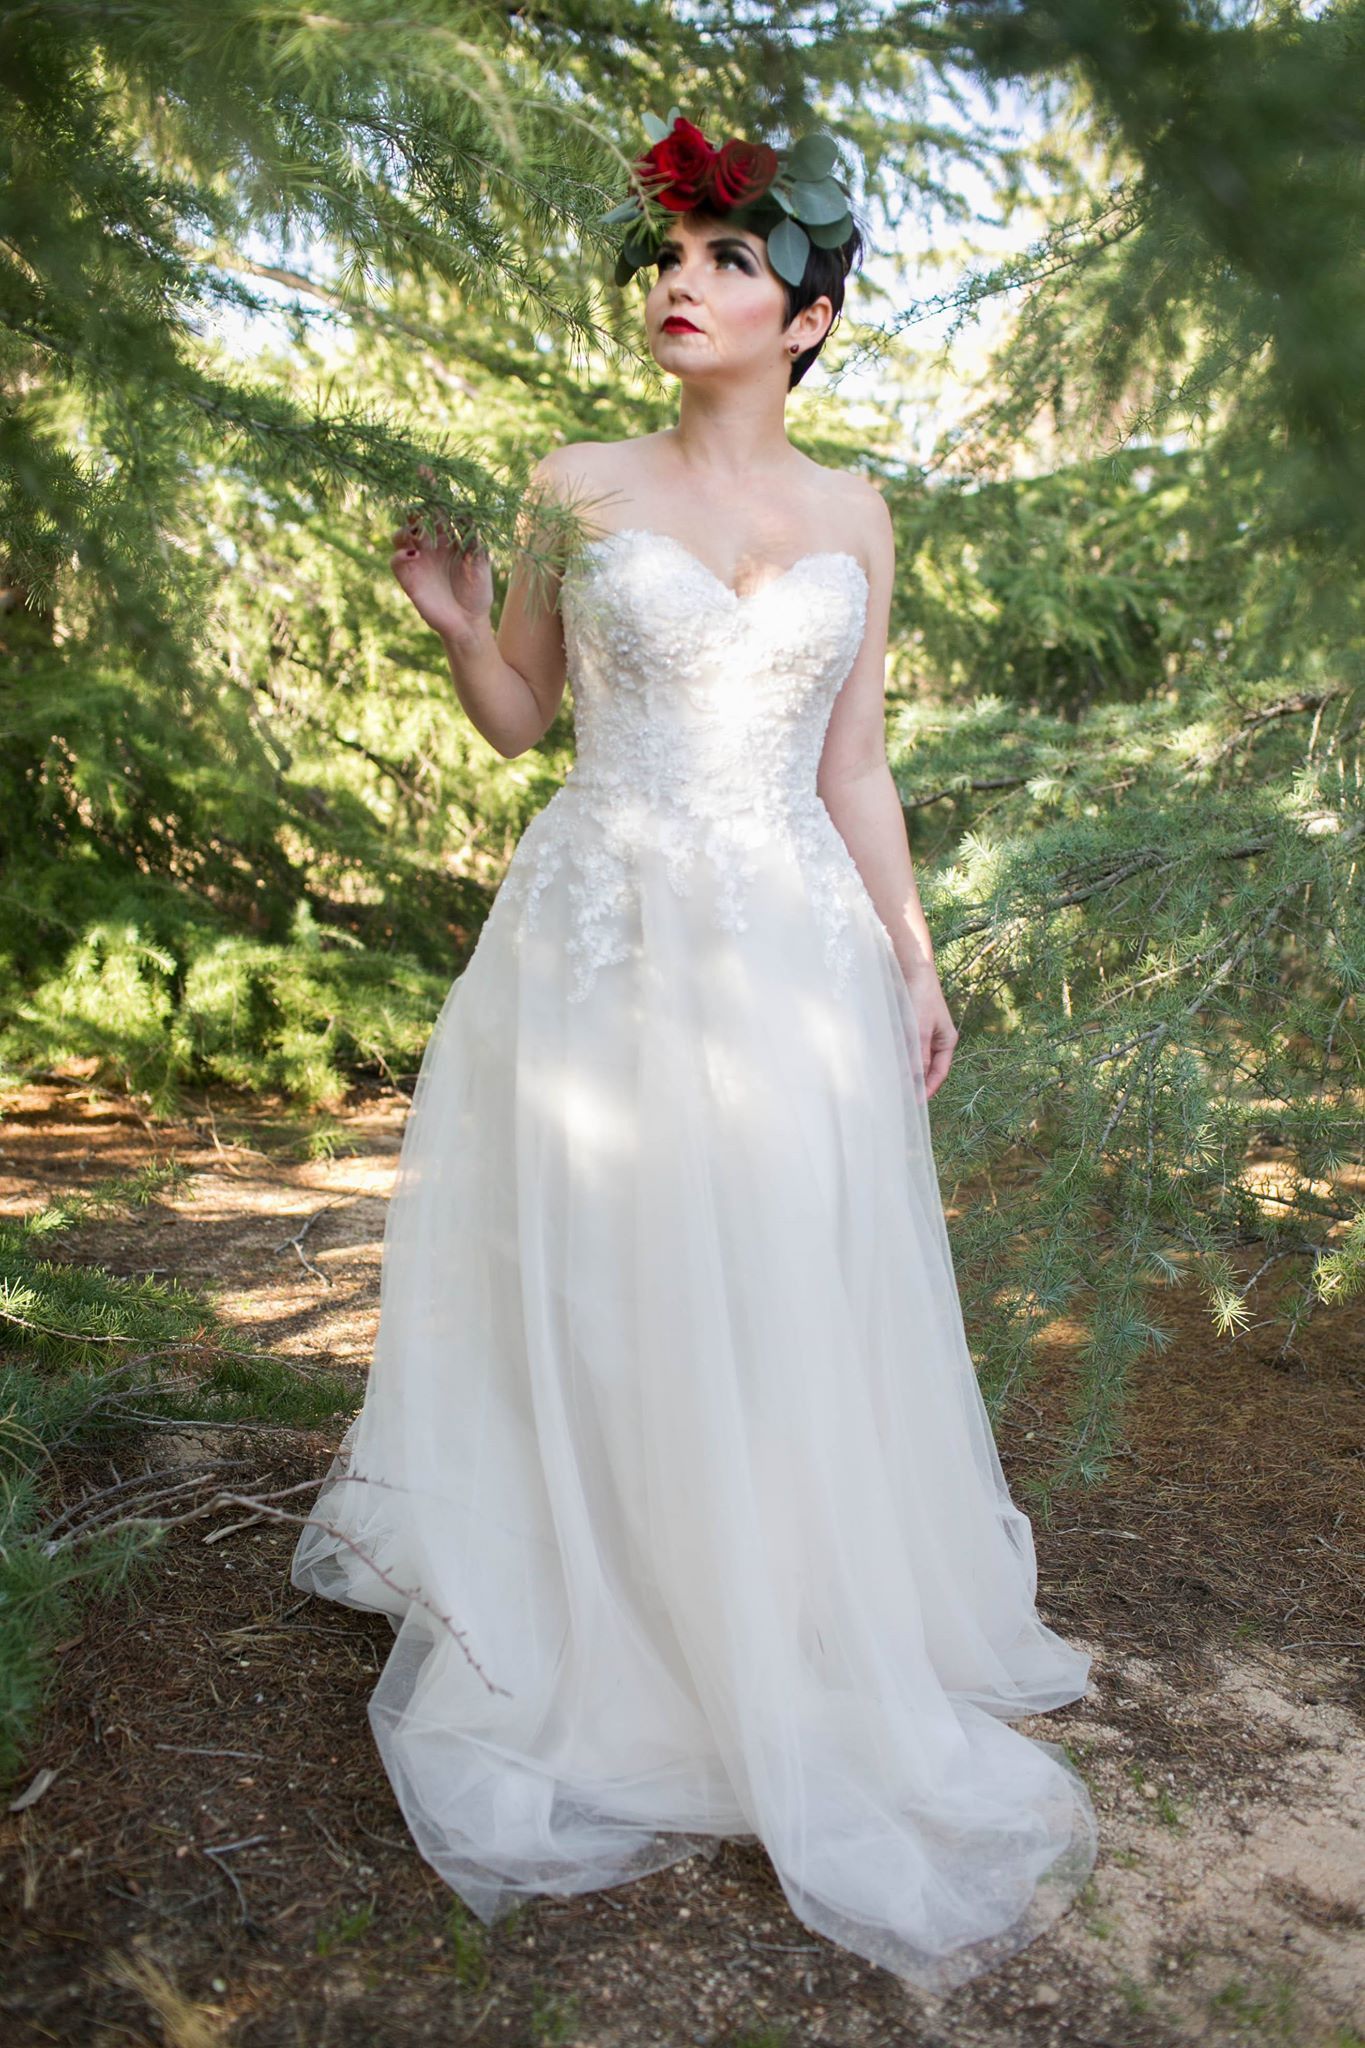 Smitten_bridal_fairytale_Shoot_hesperia.jpg